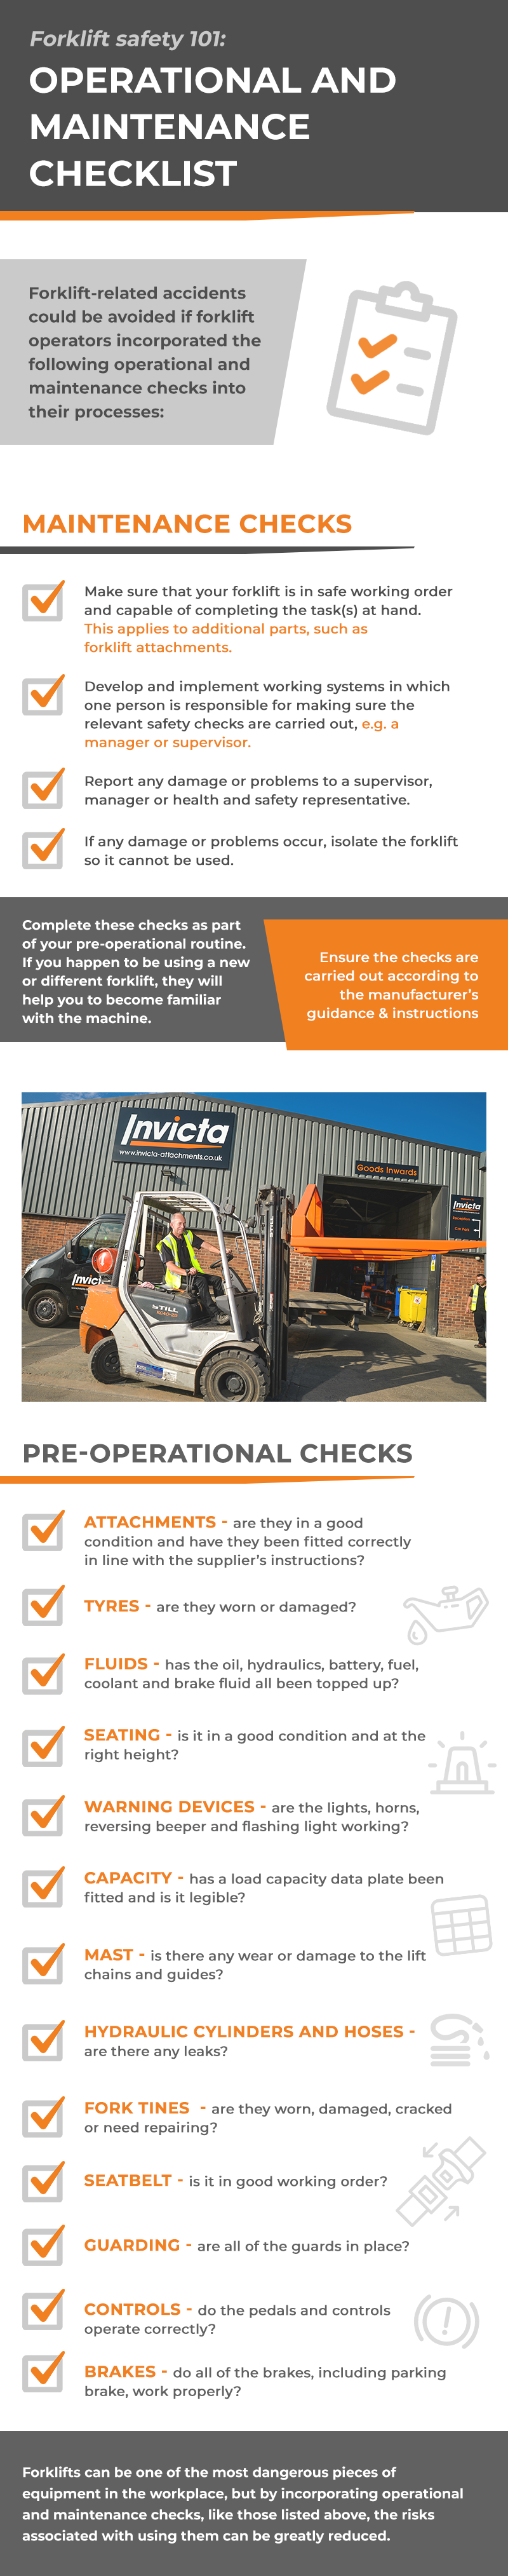 Invicta-forklift-safety-checklist